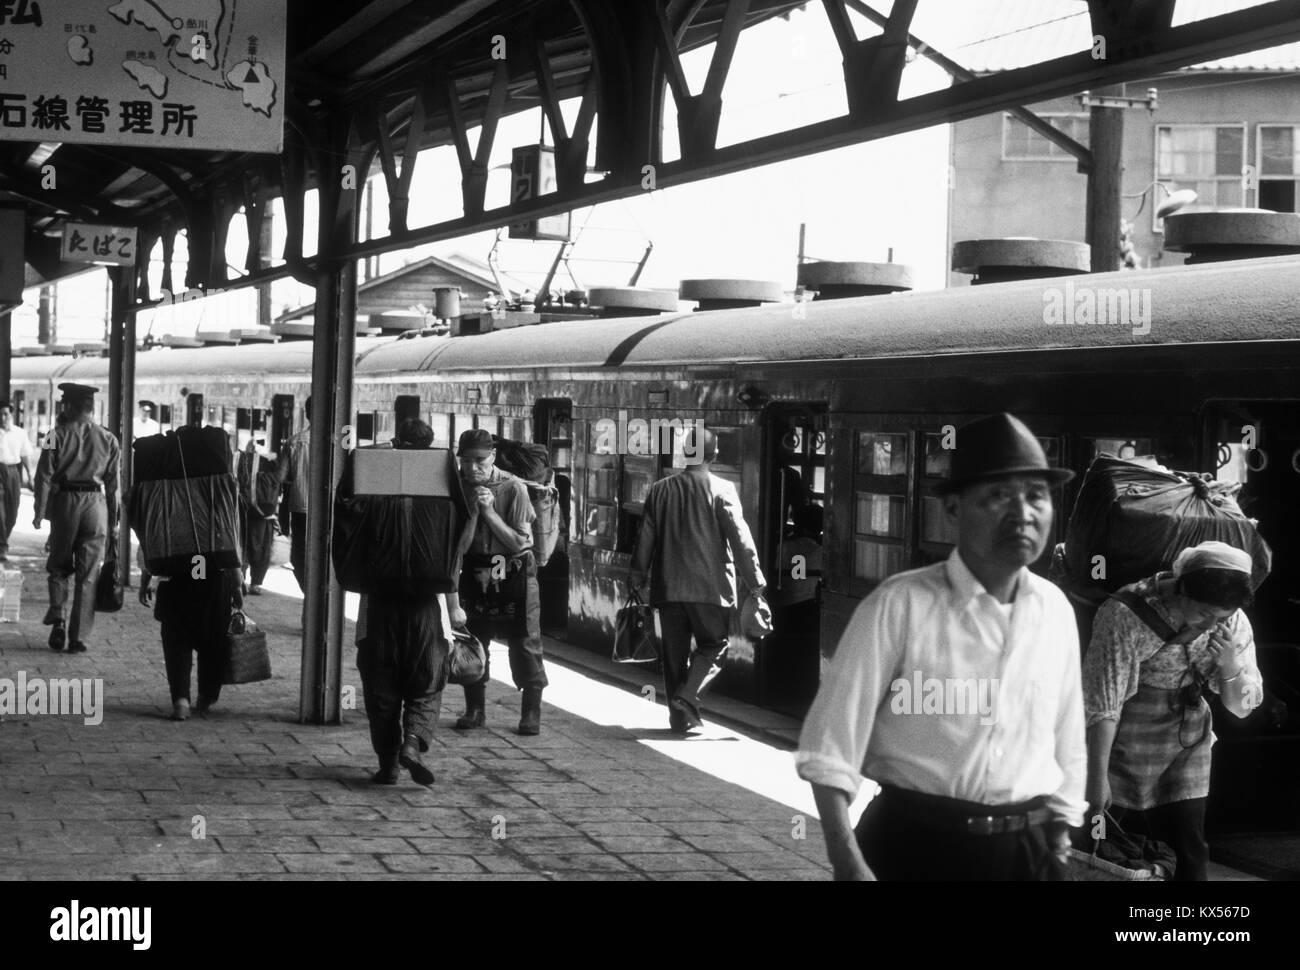 Railway station platform in Japan, 1966. Note the heavily-laden porters. Stock Photo